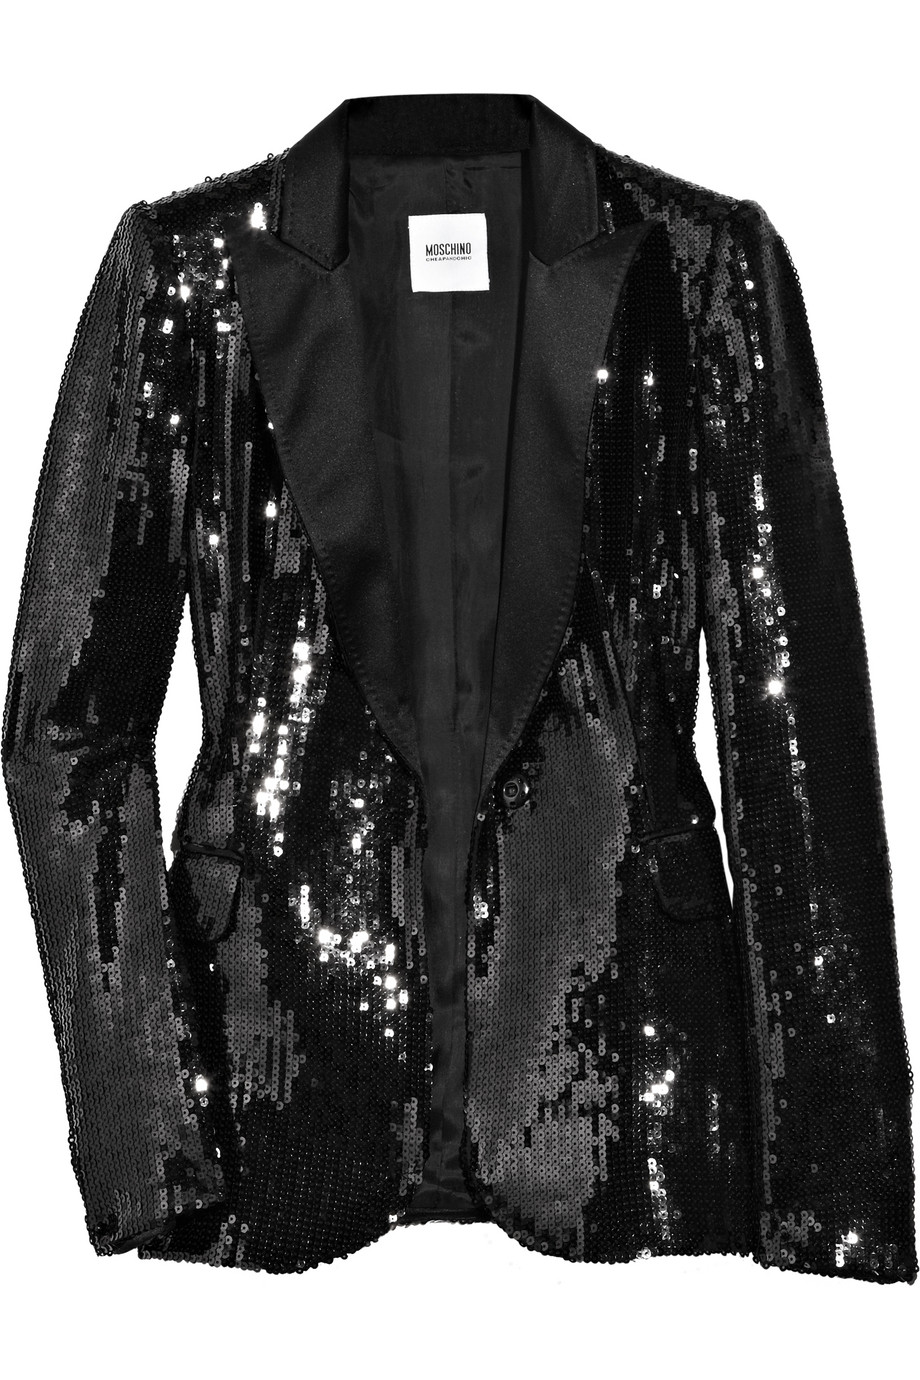 Lyst Boutique Moschino Sequined Satin Tuxedo Jacket In Black